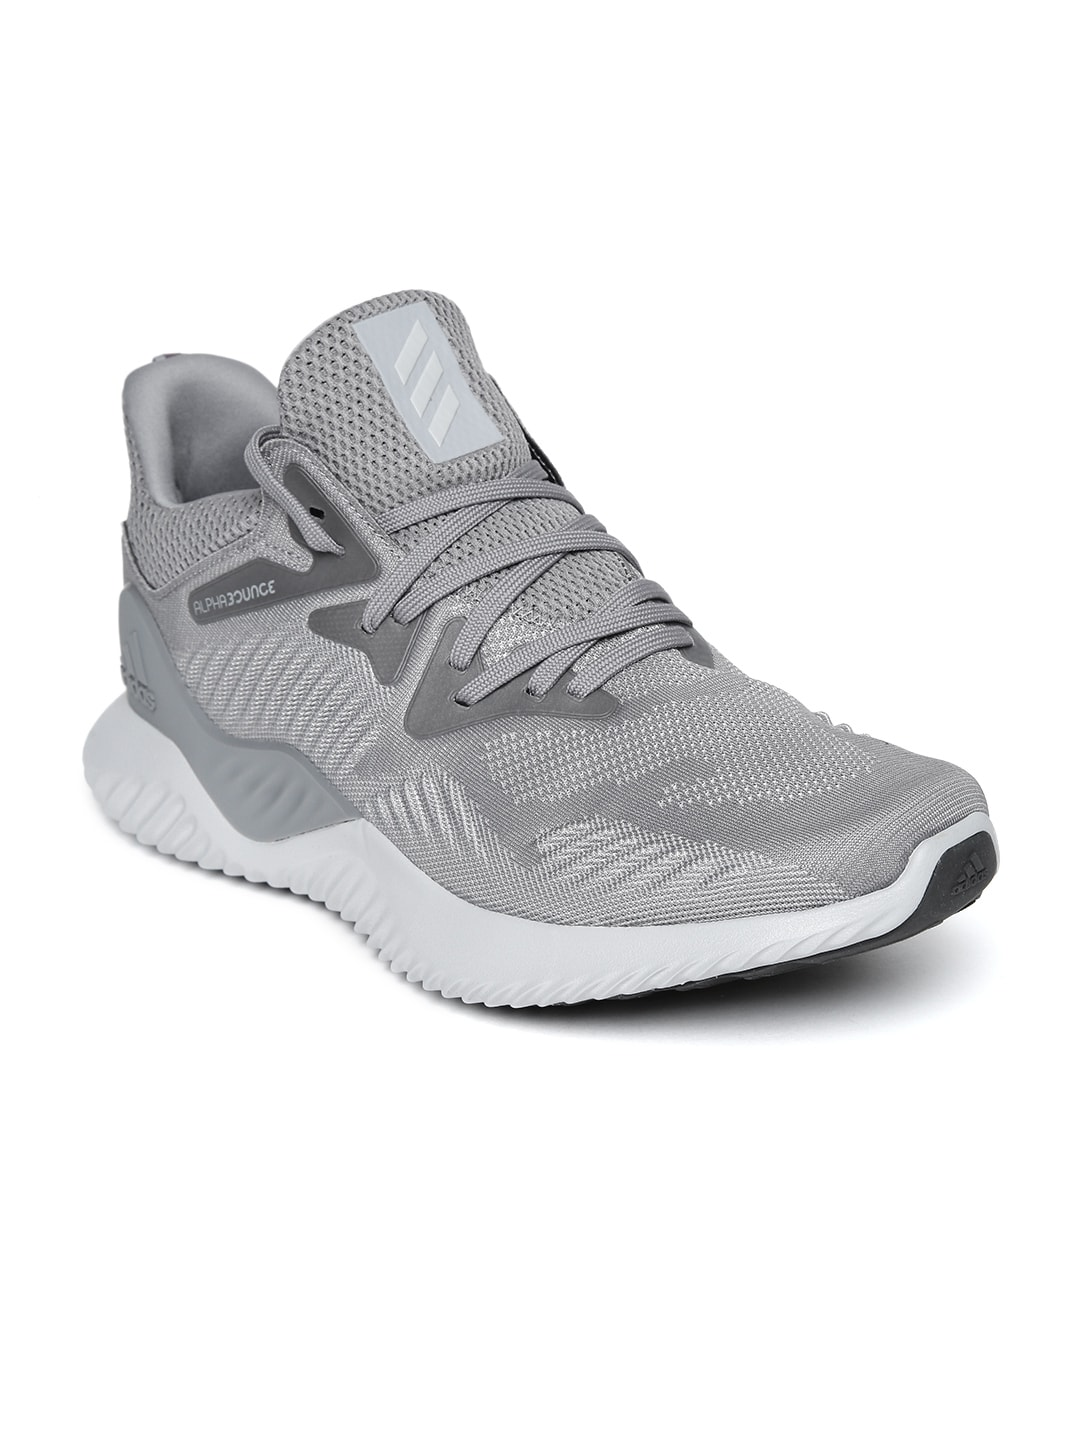 the best attitude edb81 a332d Alphabounce - Buy Alphabounce online in India